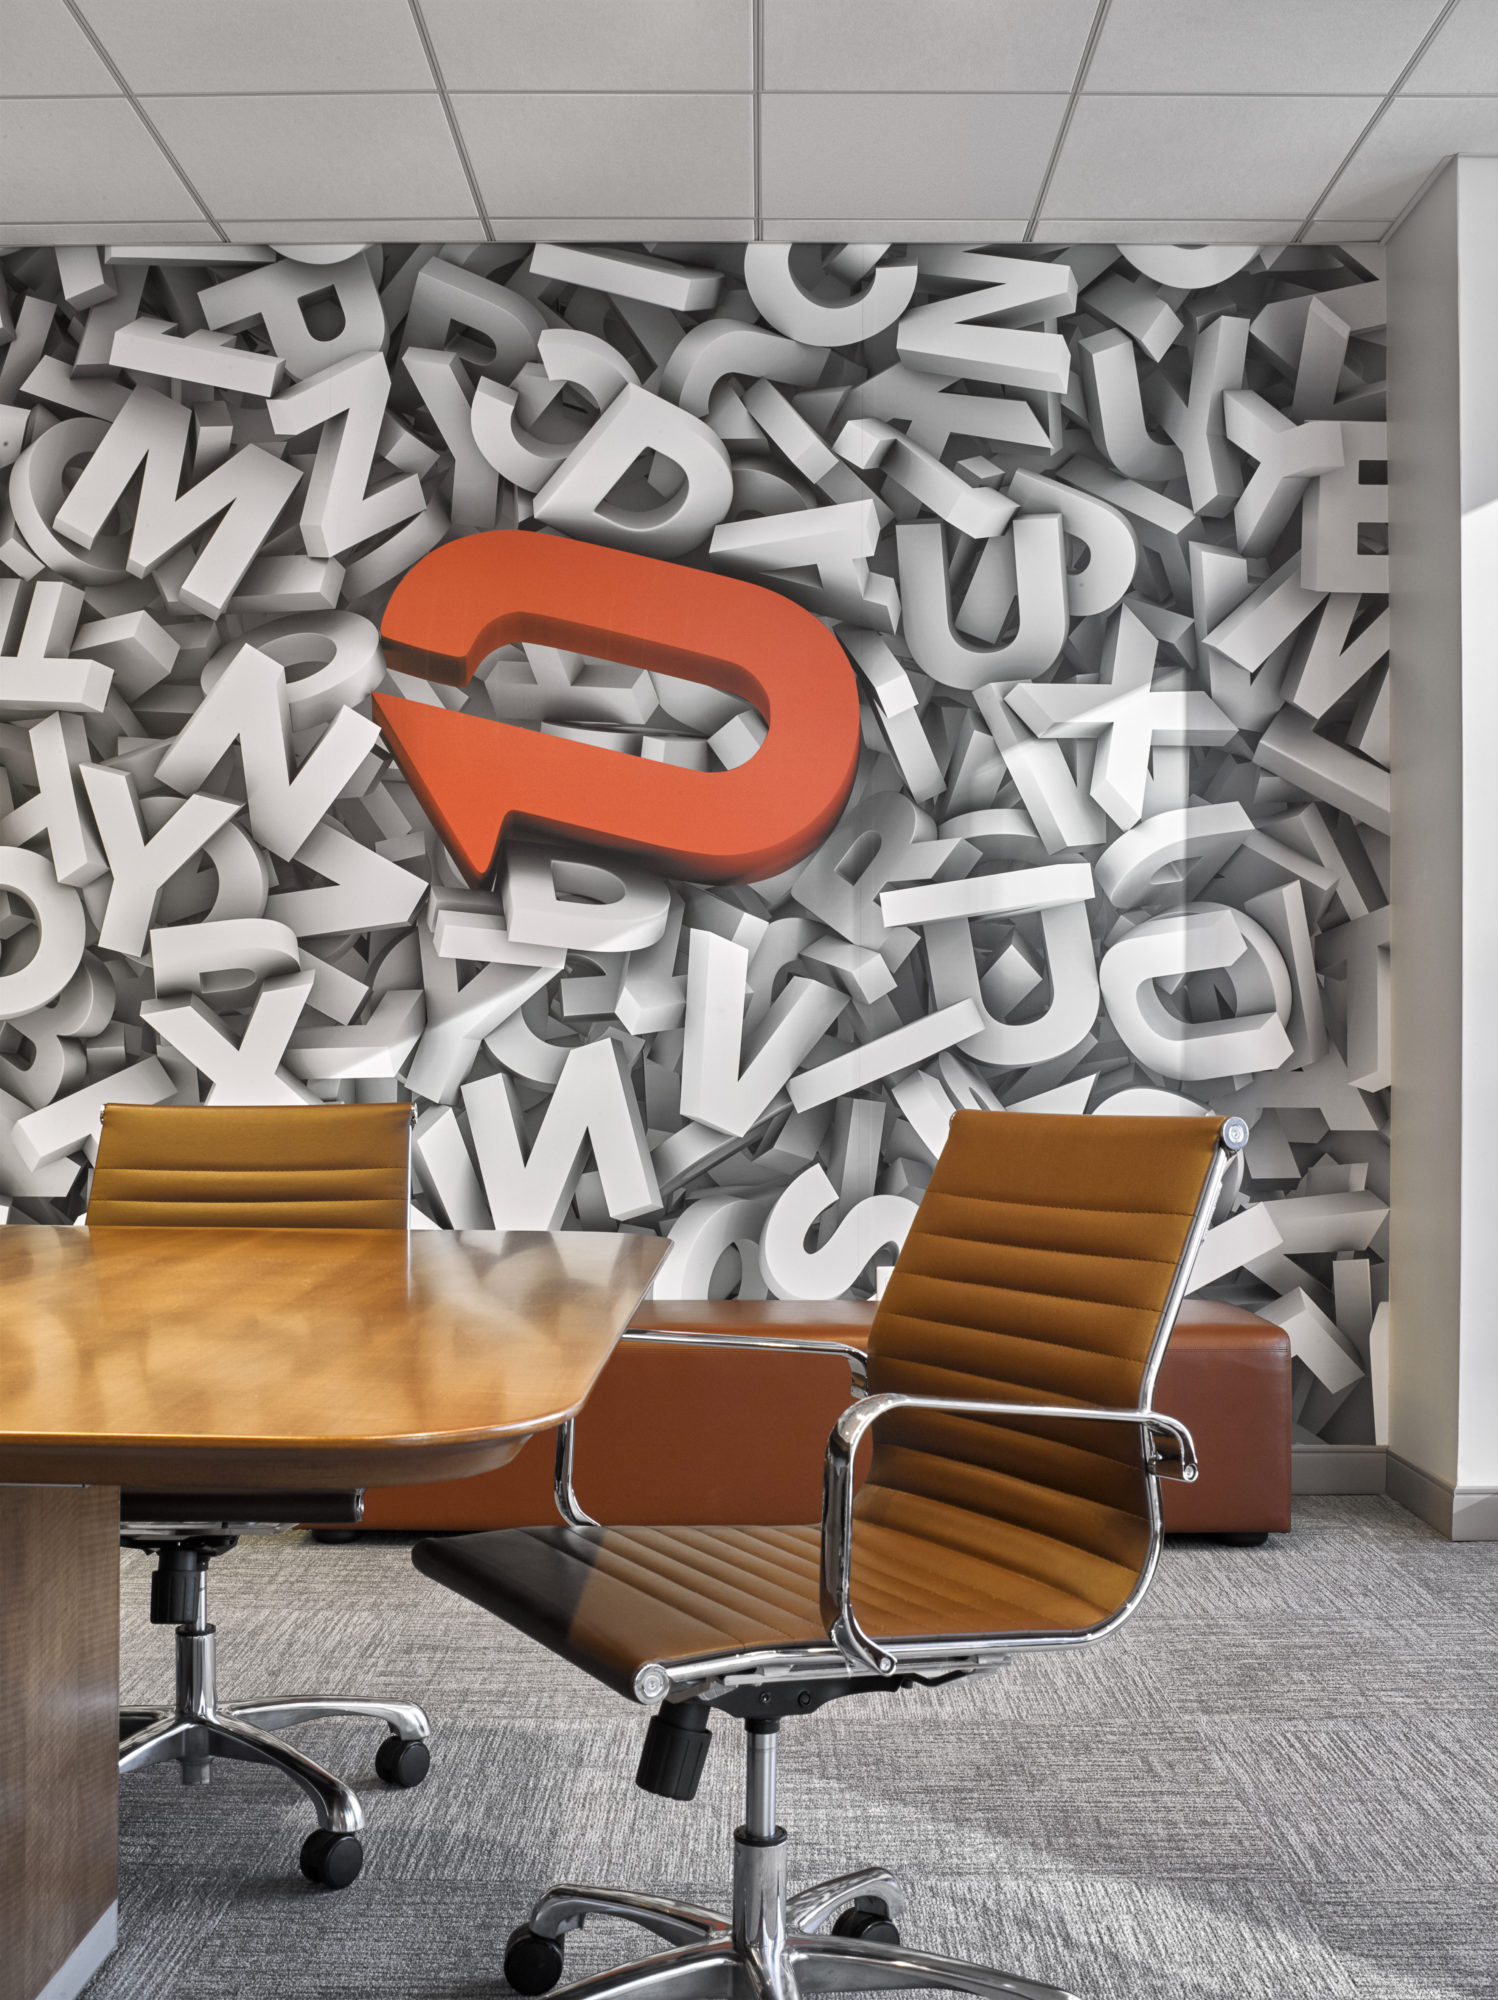 3D wallpaper with the Padilla CRT logo in a conference room at Padilla CRT, New York. MEP provided by 2L Engineering.